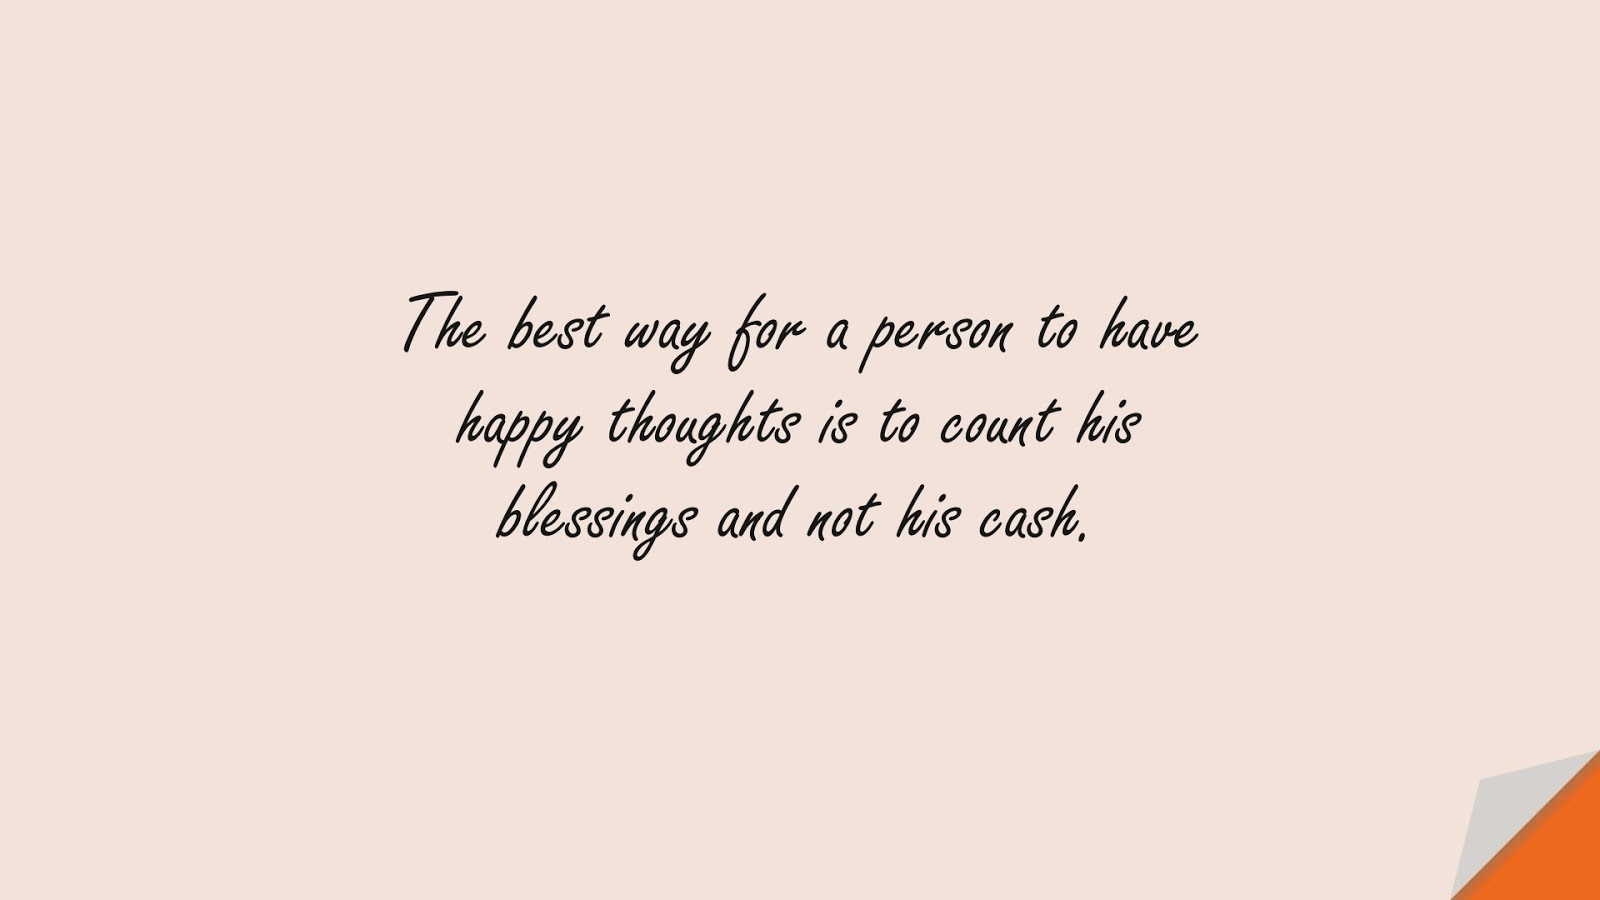 The best way for a person to have happy thoughts is to count his blessings and not his cash.FALSE